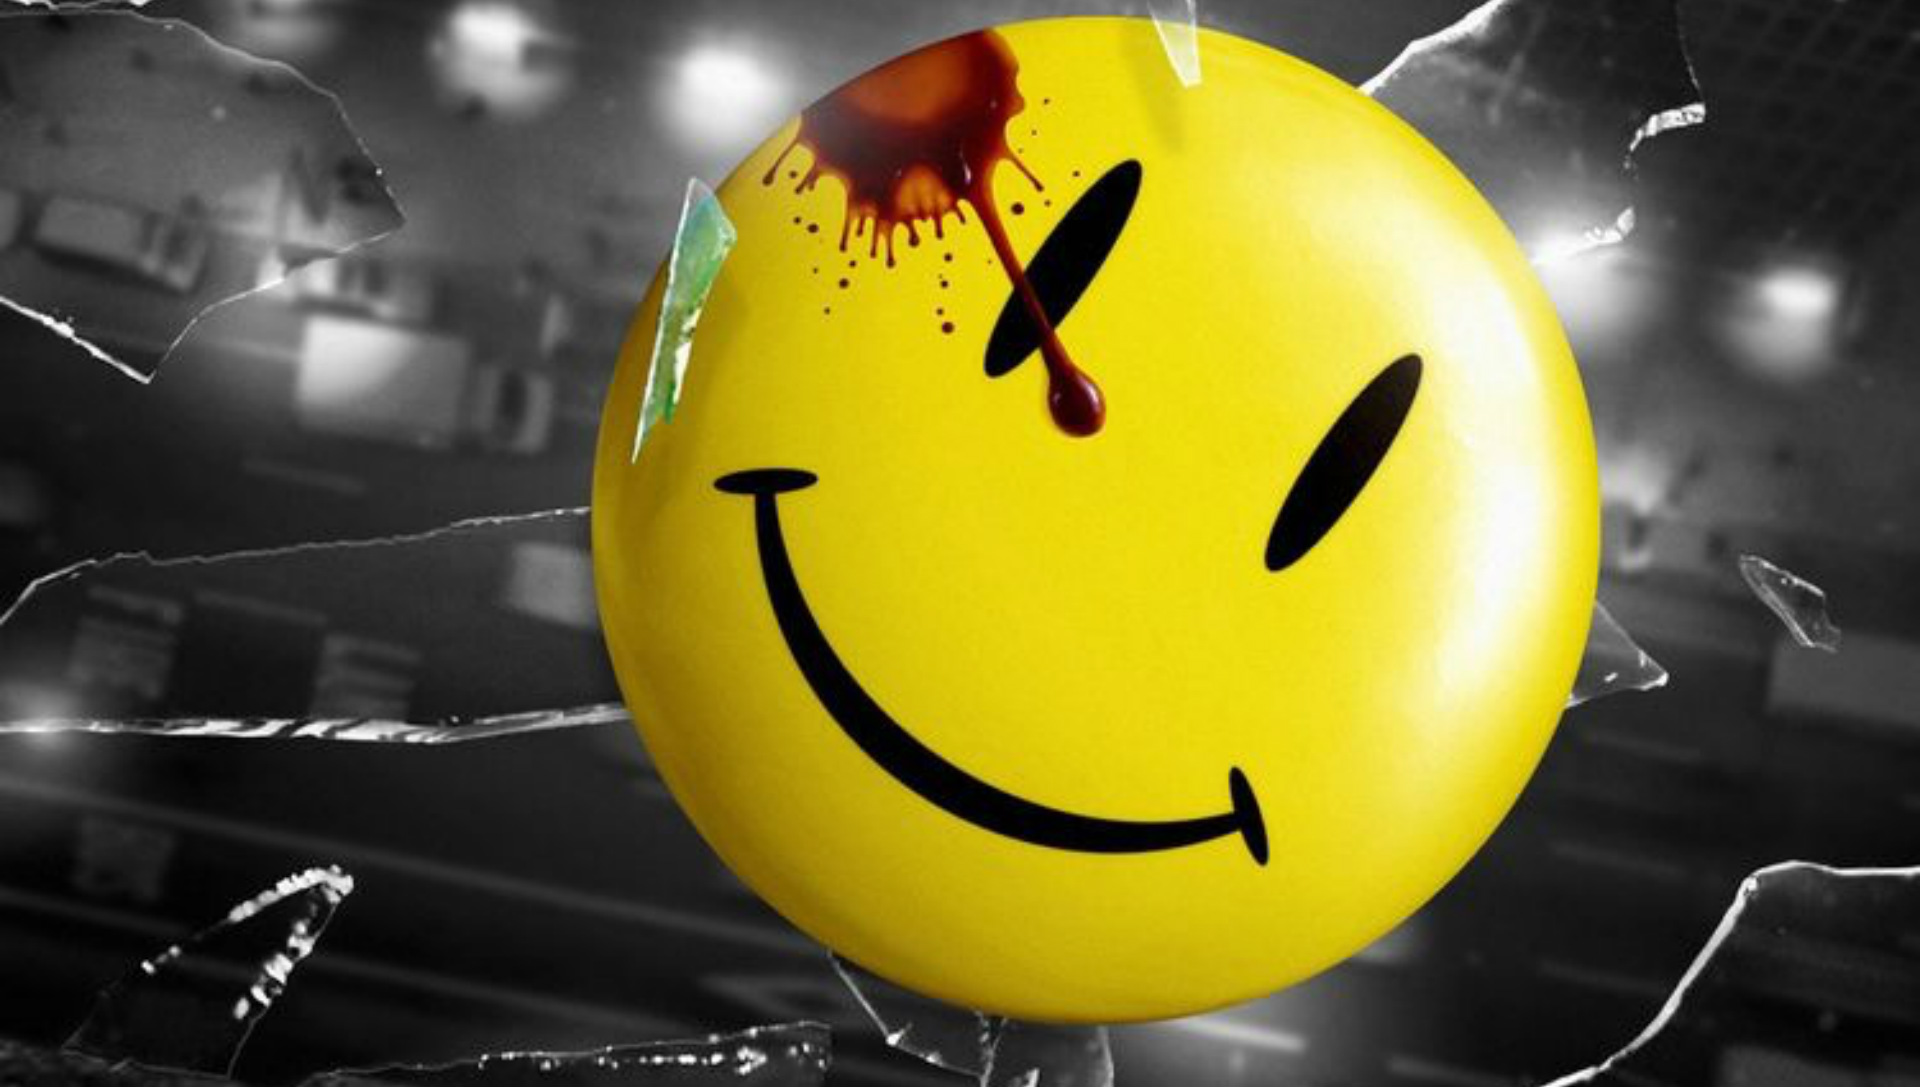 HBO's First Watchmen Trailer Reveals That the End Is Still Nigh